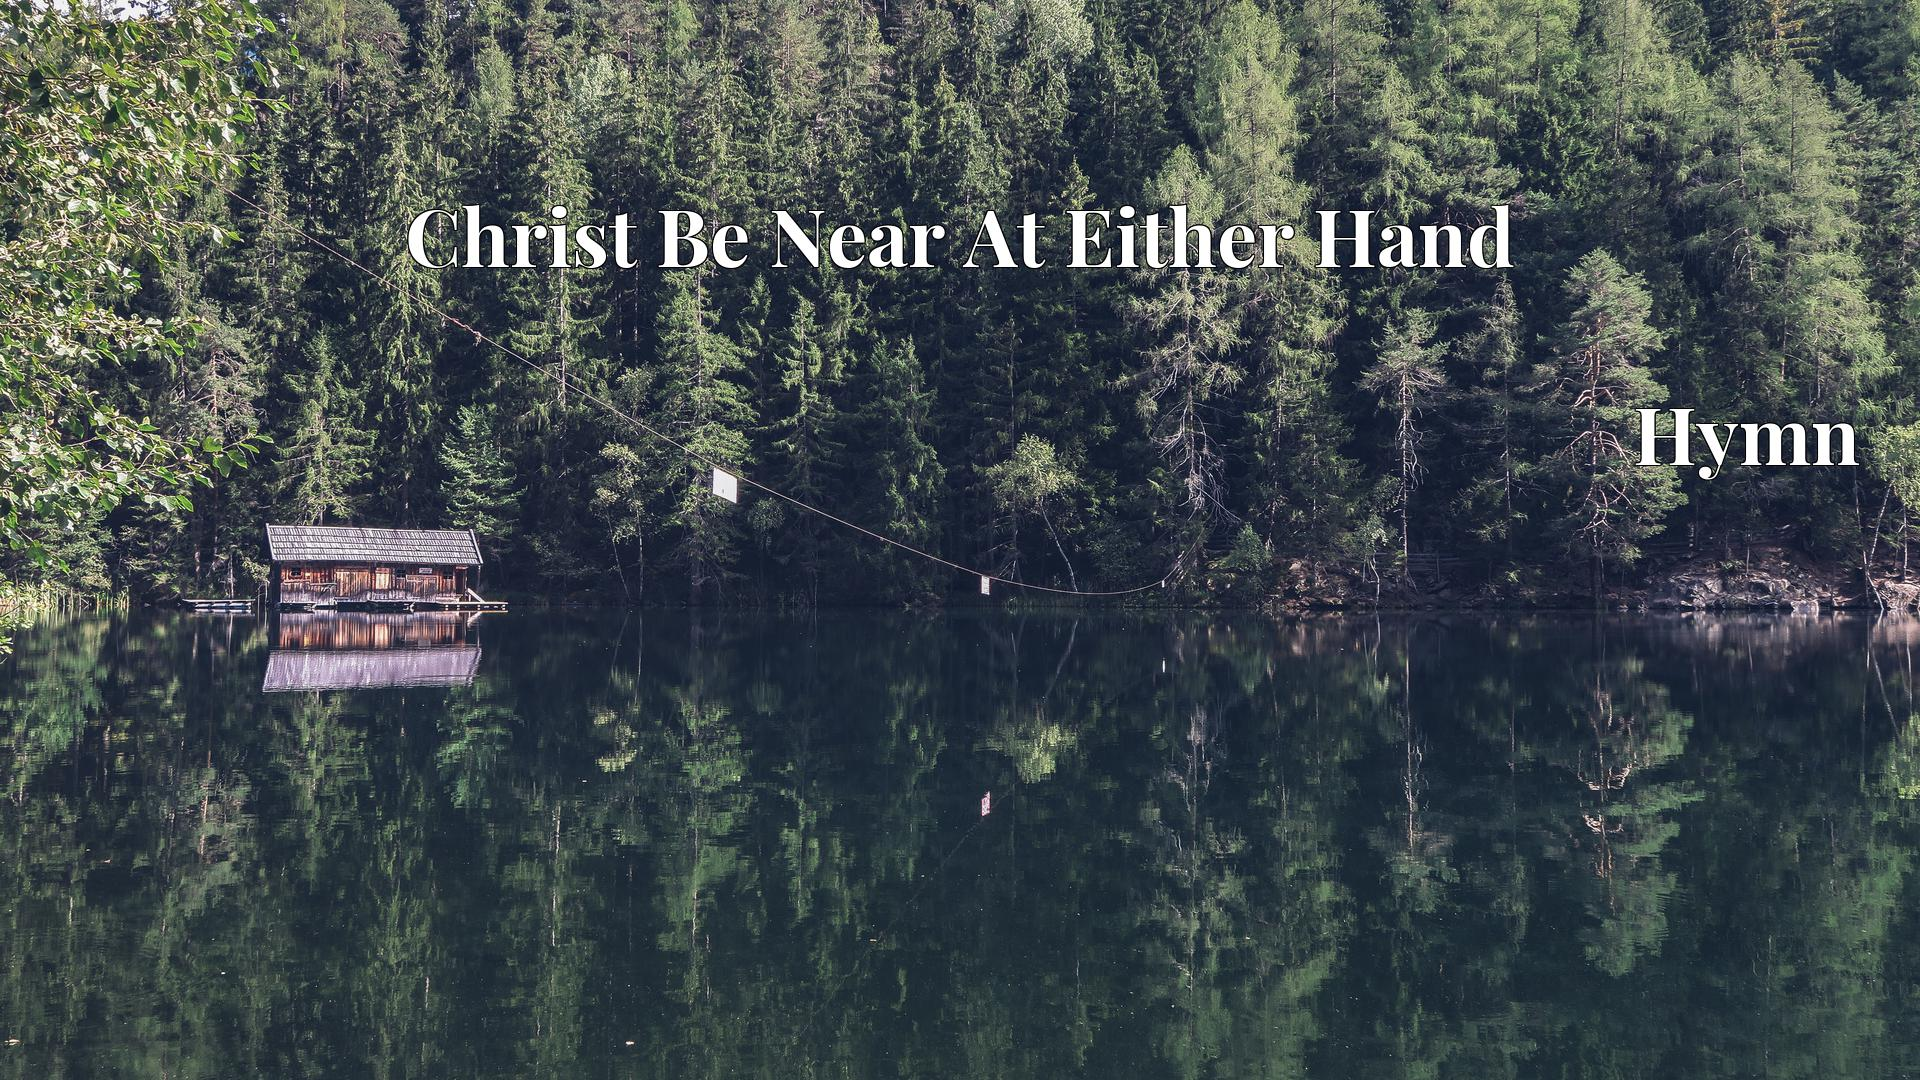 Christ Be Near At Either Hand - Hymn